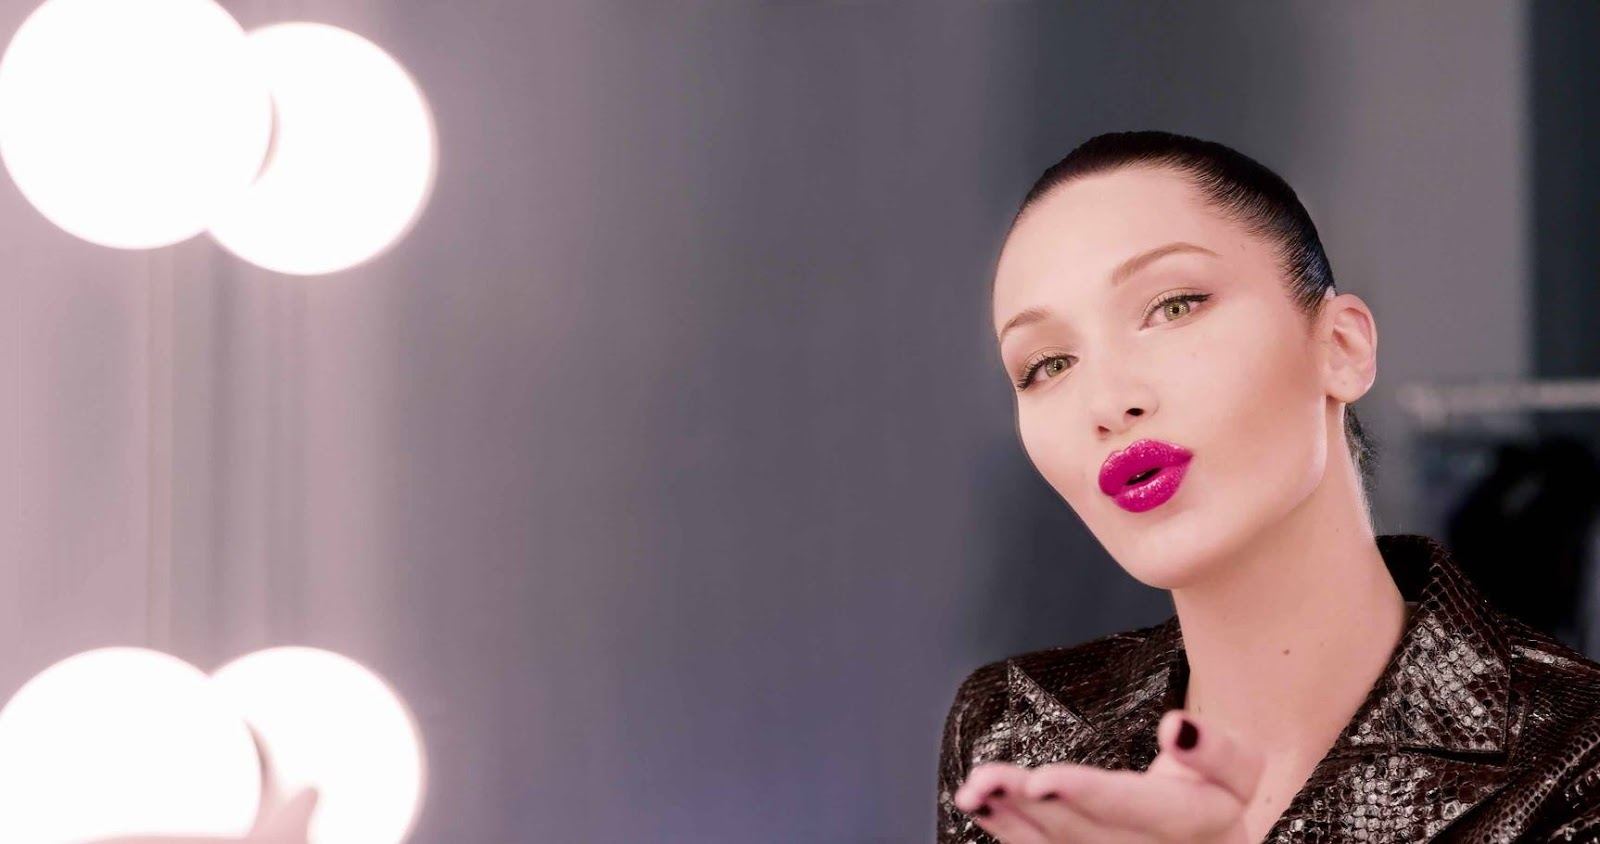 Dior Addict Lip Lacquer Plump Campaign ft. Bella Hadid